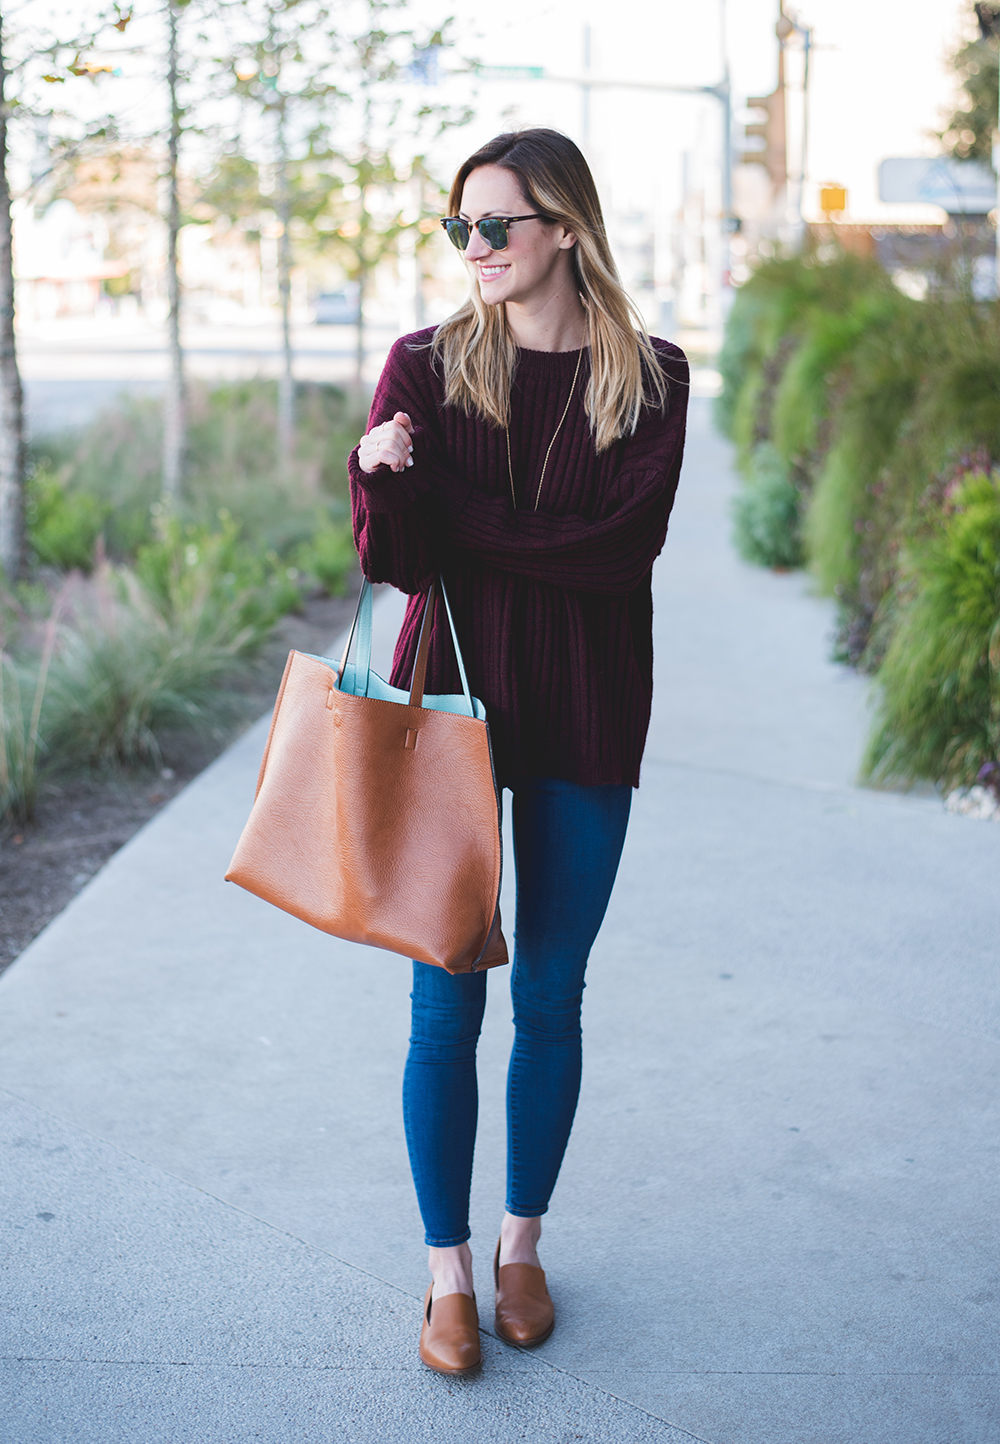 livvyland-blog-olivia-watson-oversize-wine-burgundy-knit-chunky-grandpa-sweater-austin-texas-fashion-blogger-olivia-watson-kathryn-frazer-photography-south-congress-hotel-madewell-tan-loafers-flats-14